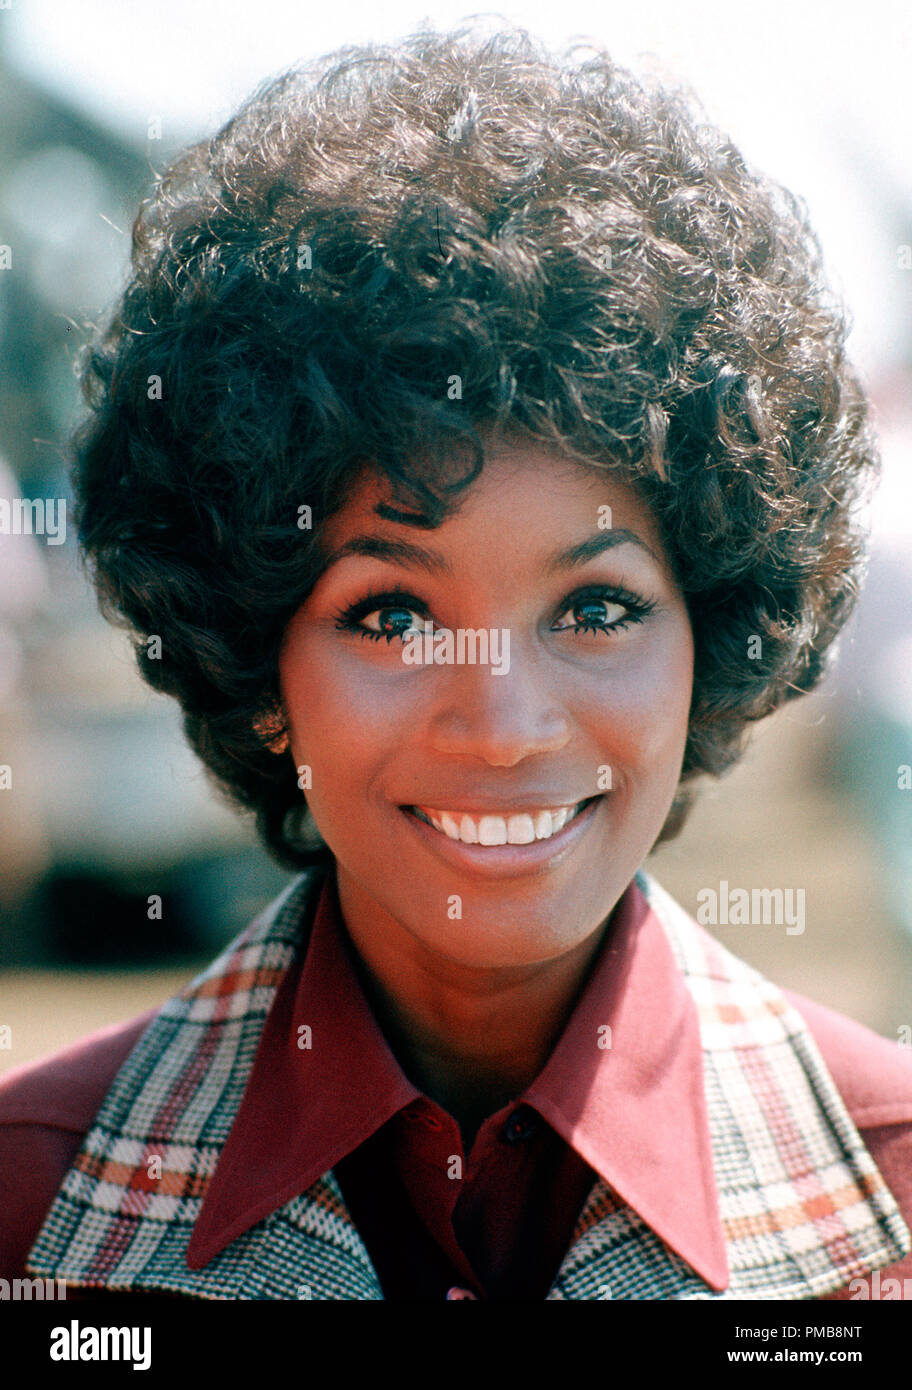 Discussion on this topic: Peggy Evans, teresa-graves/